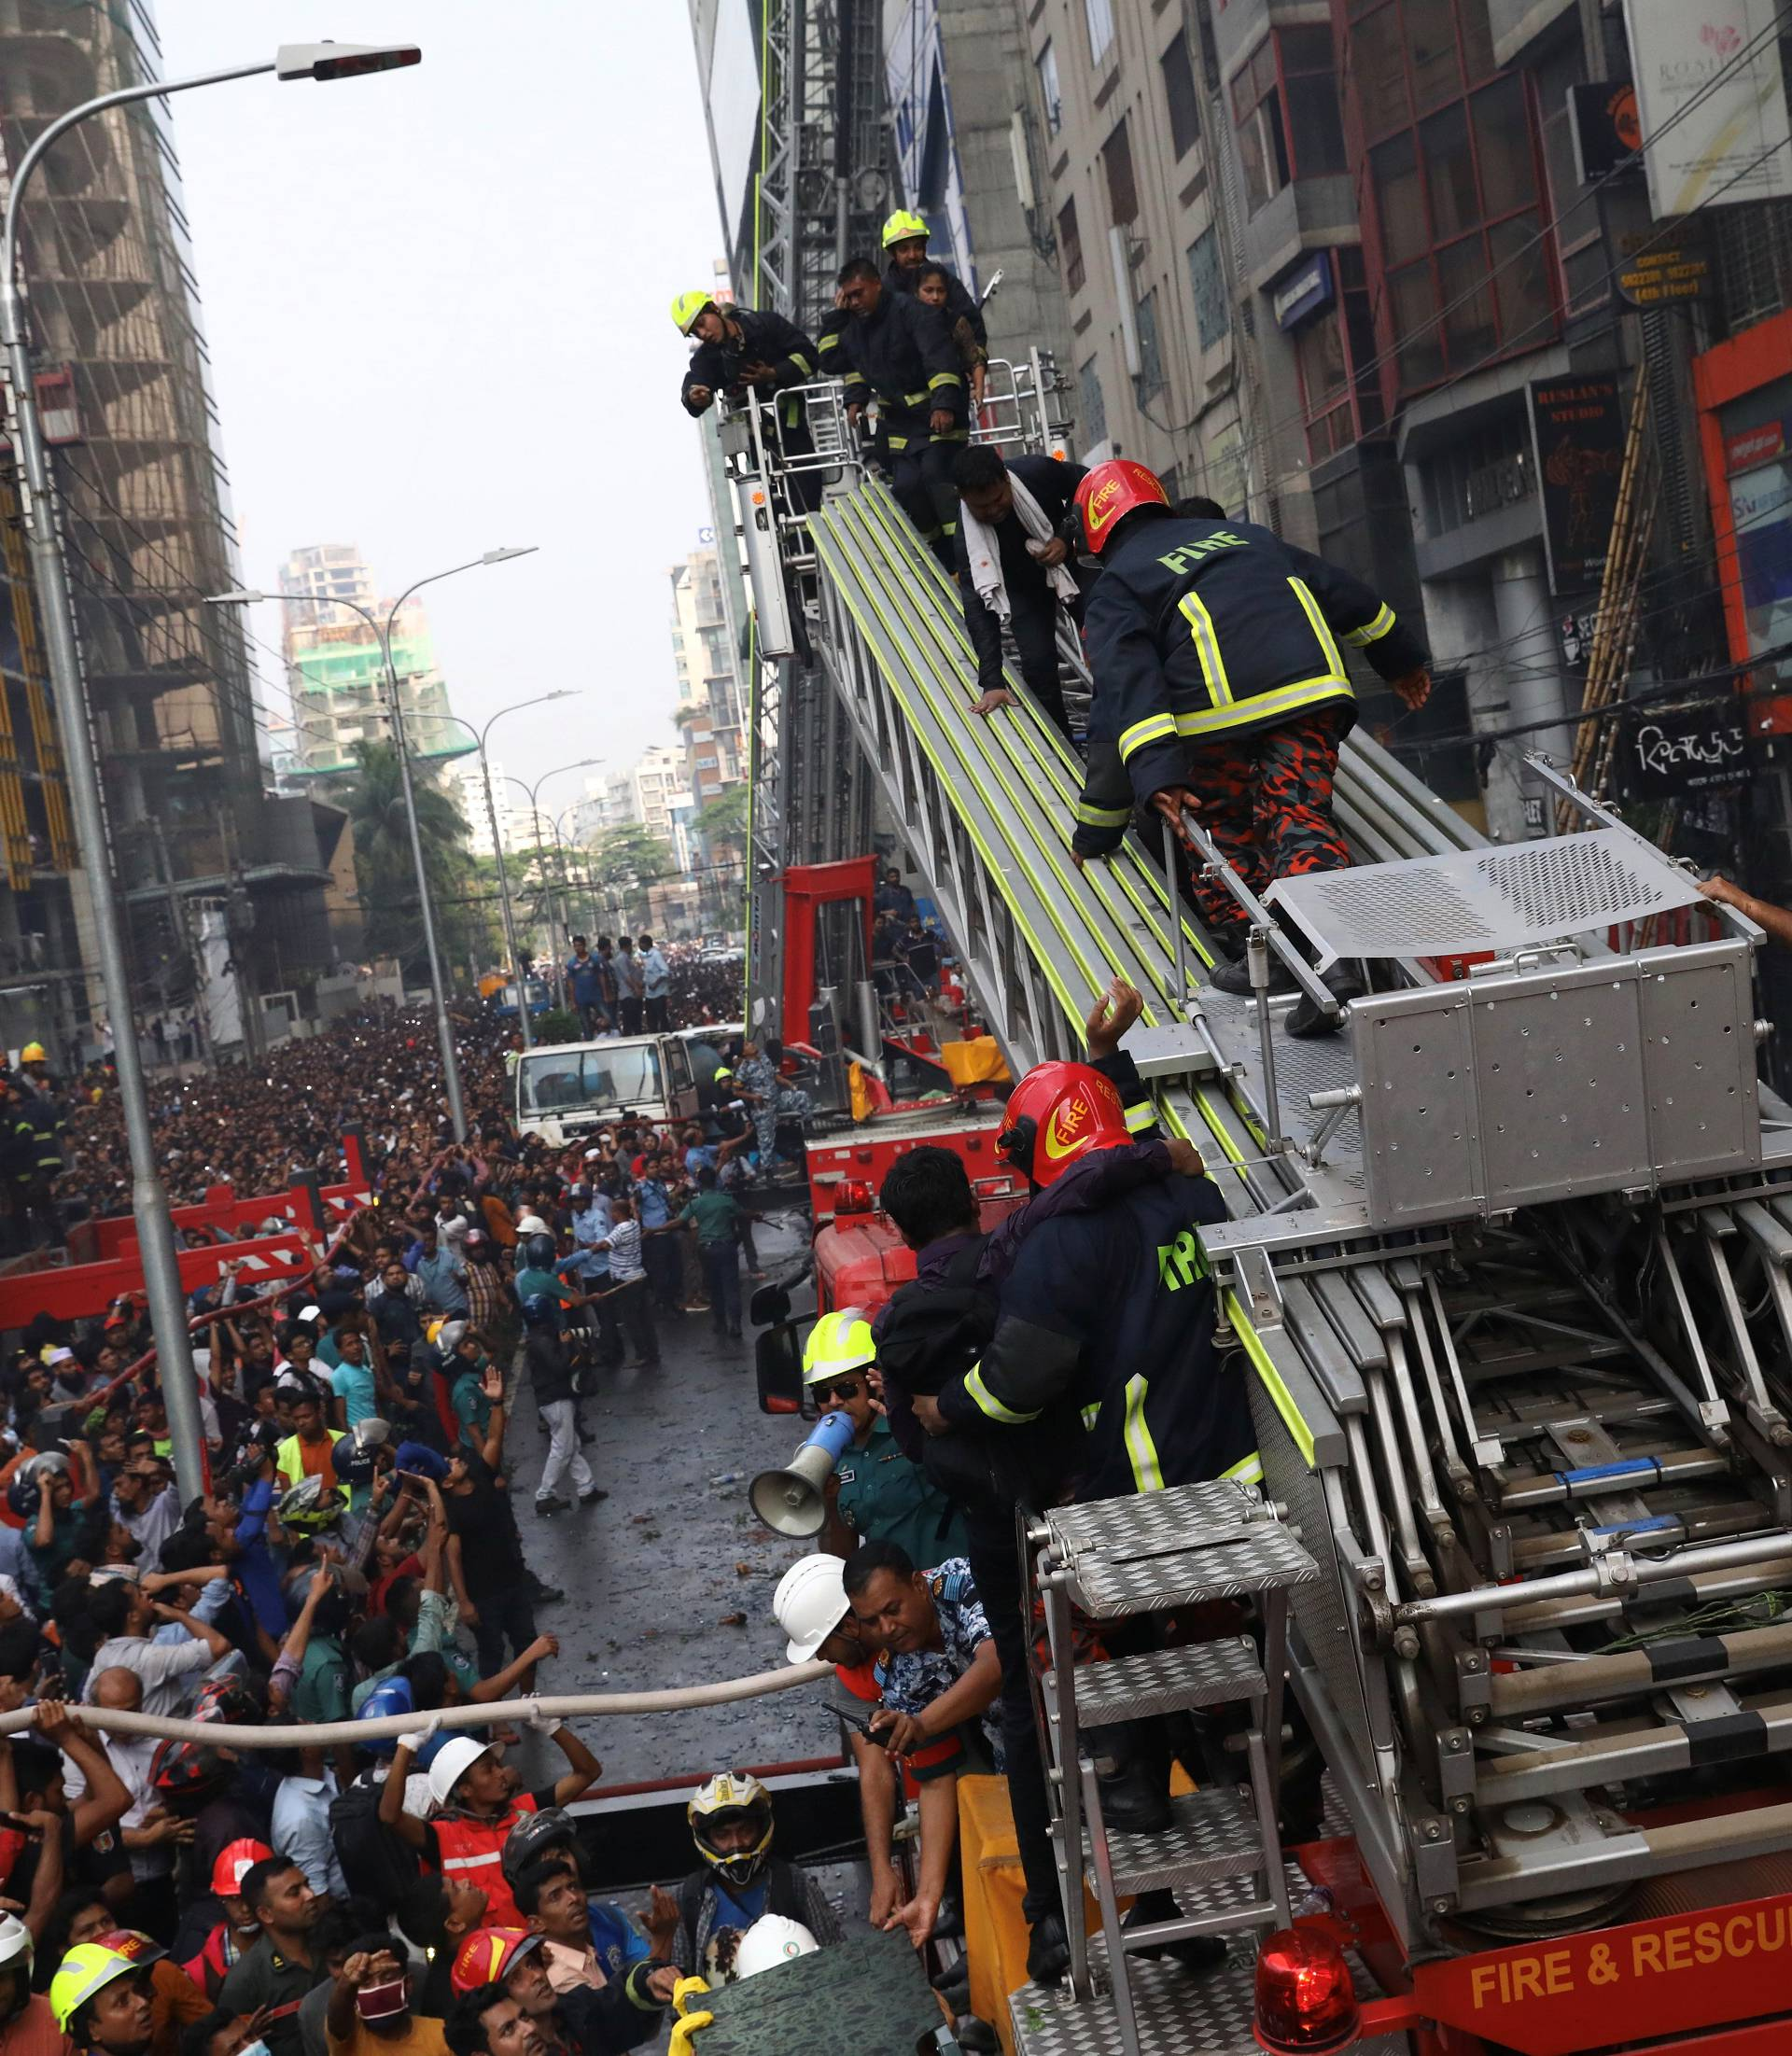 People are being rescued as fire broke out at a multi-storey commercial building in Dhaka